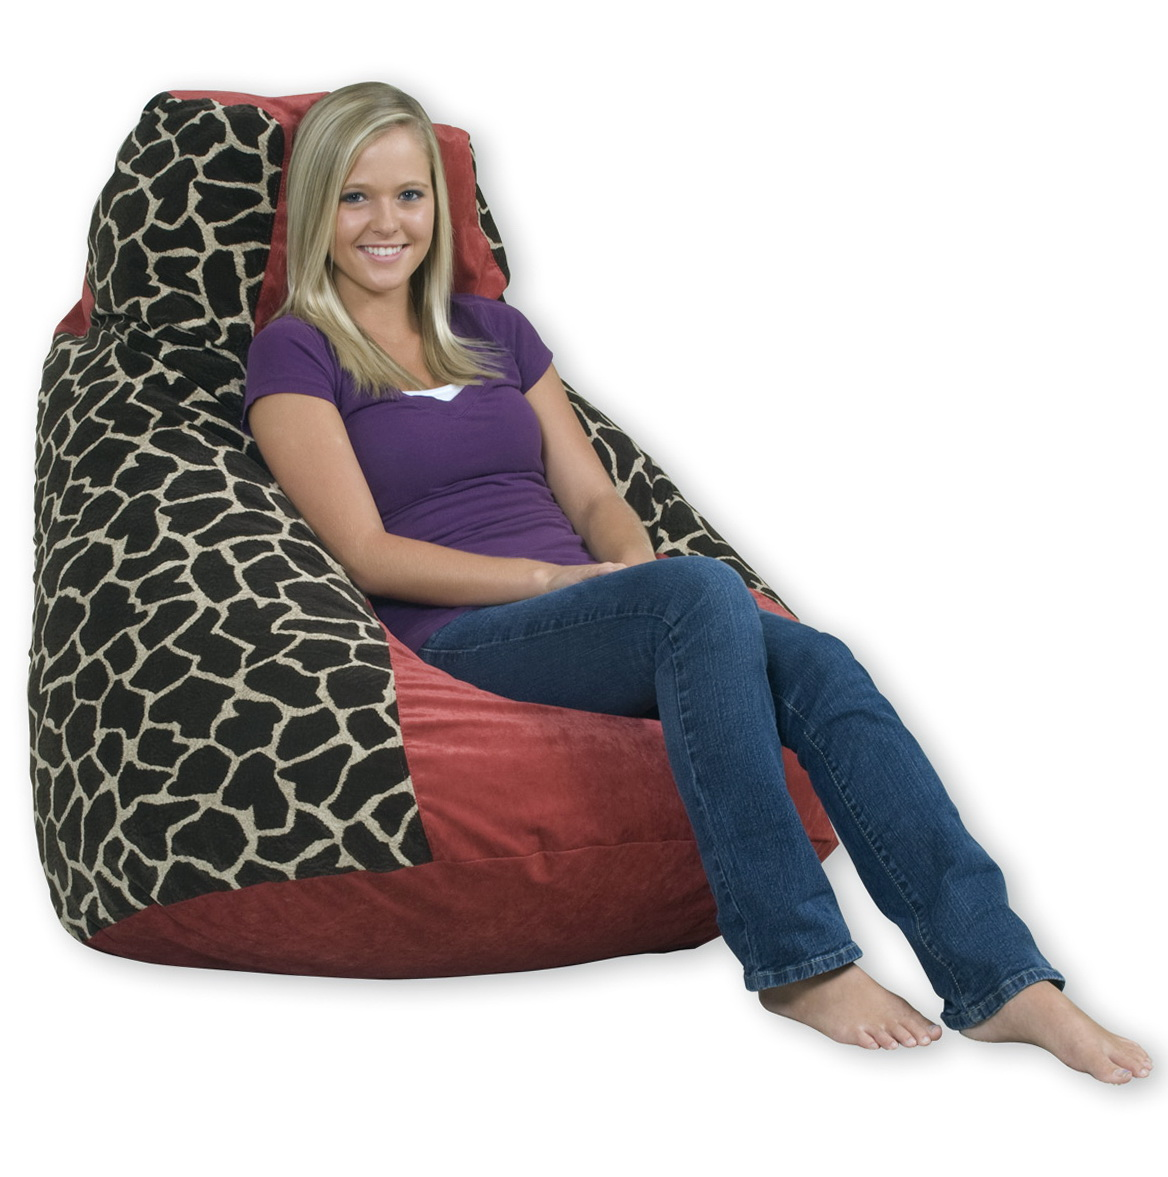 Big Bean Bag Chairs For Adultsbig Bean Bag Chairs For Adults